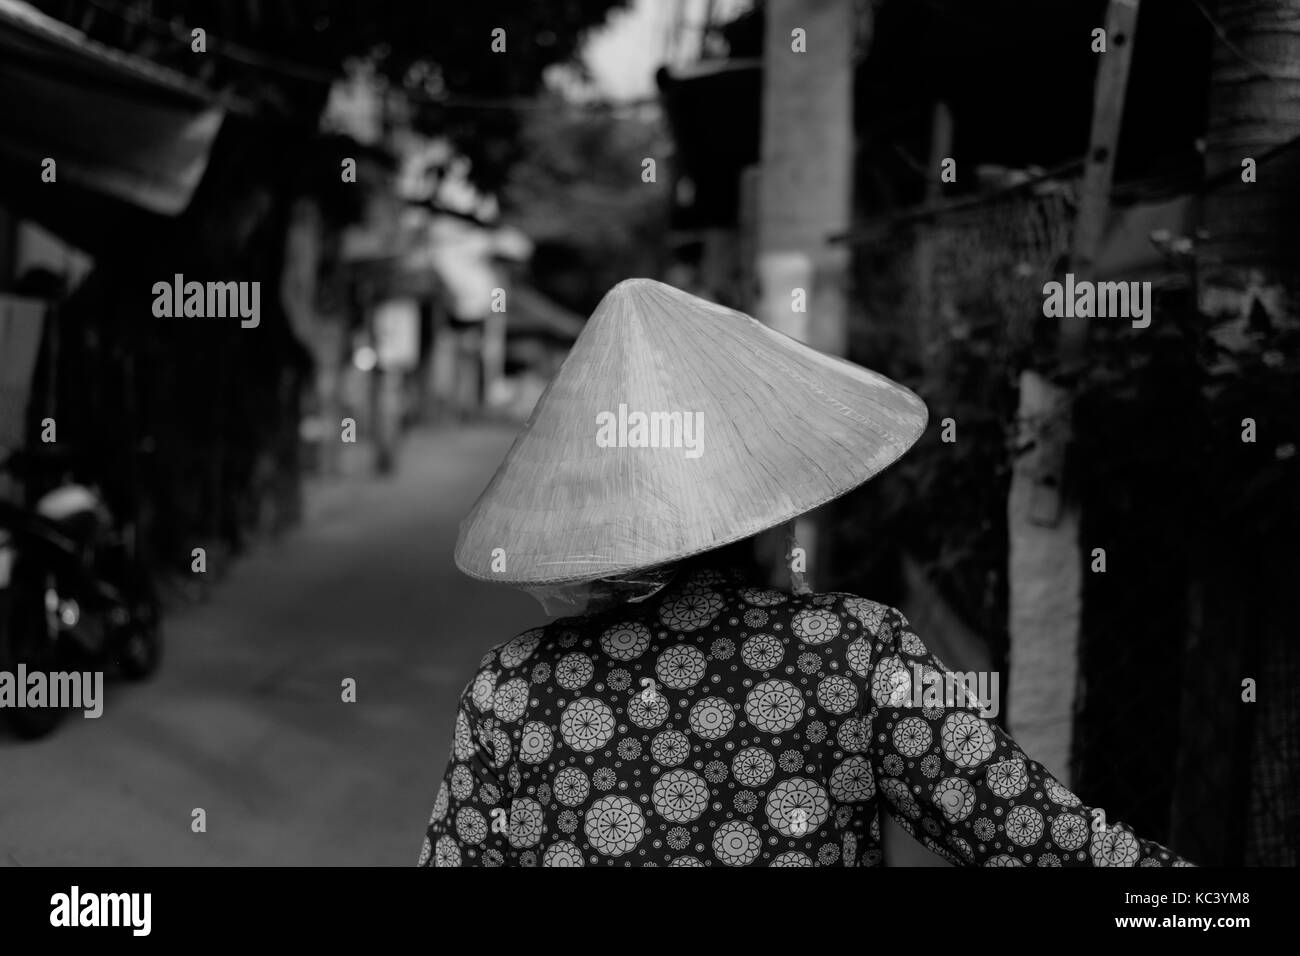 The woman sells fresh fish on the street. Black and white. - Stock Image